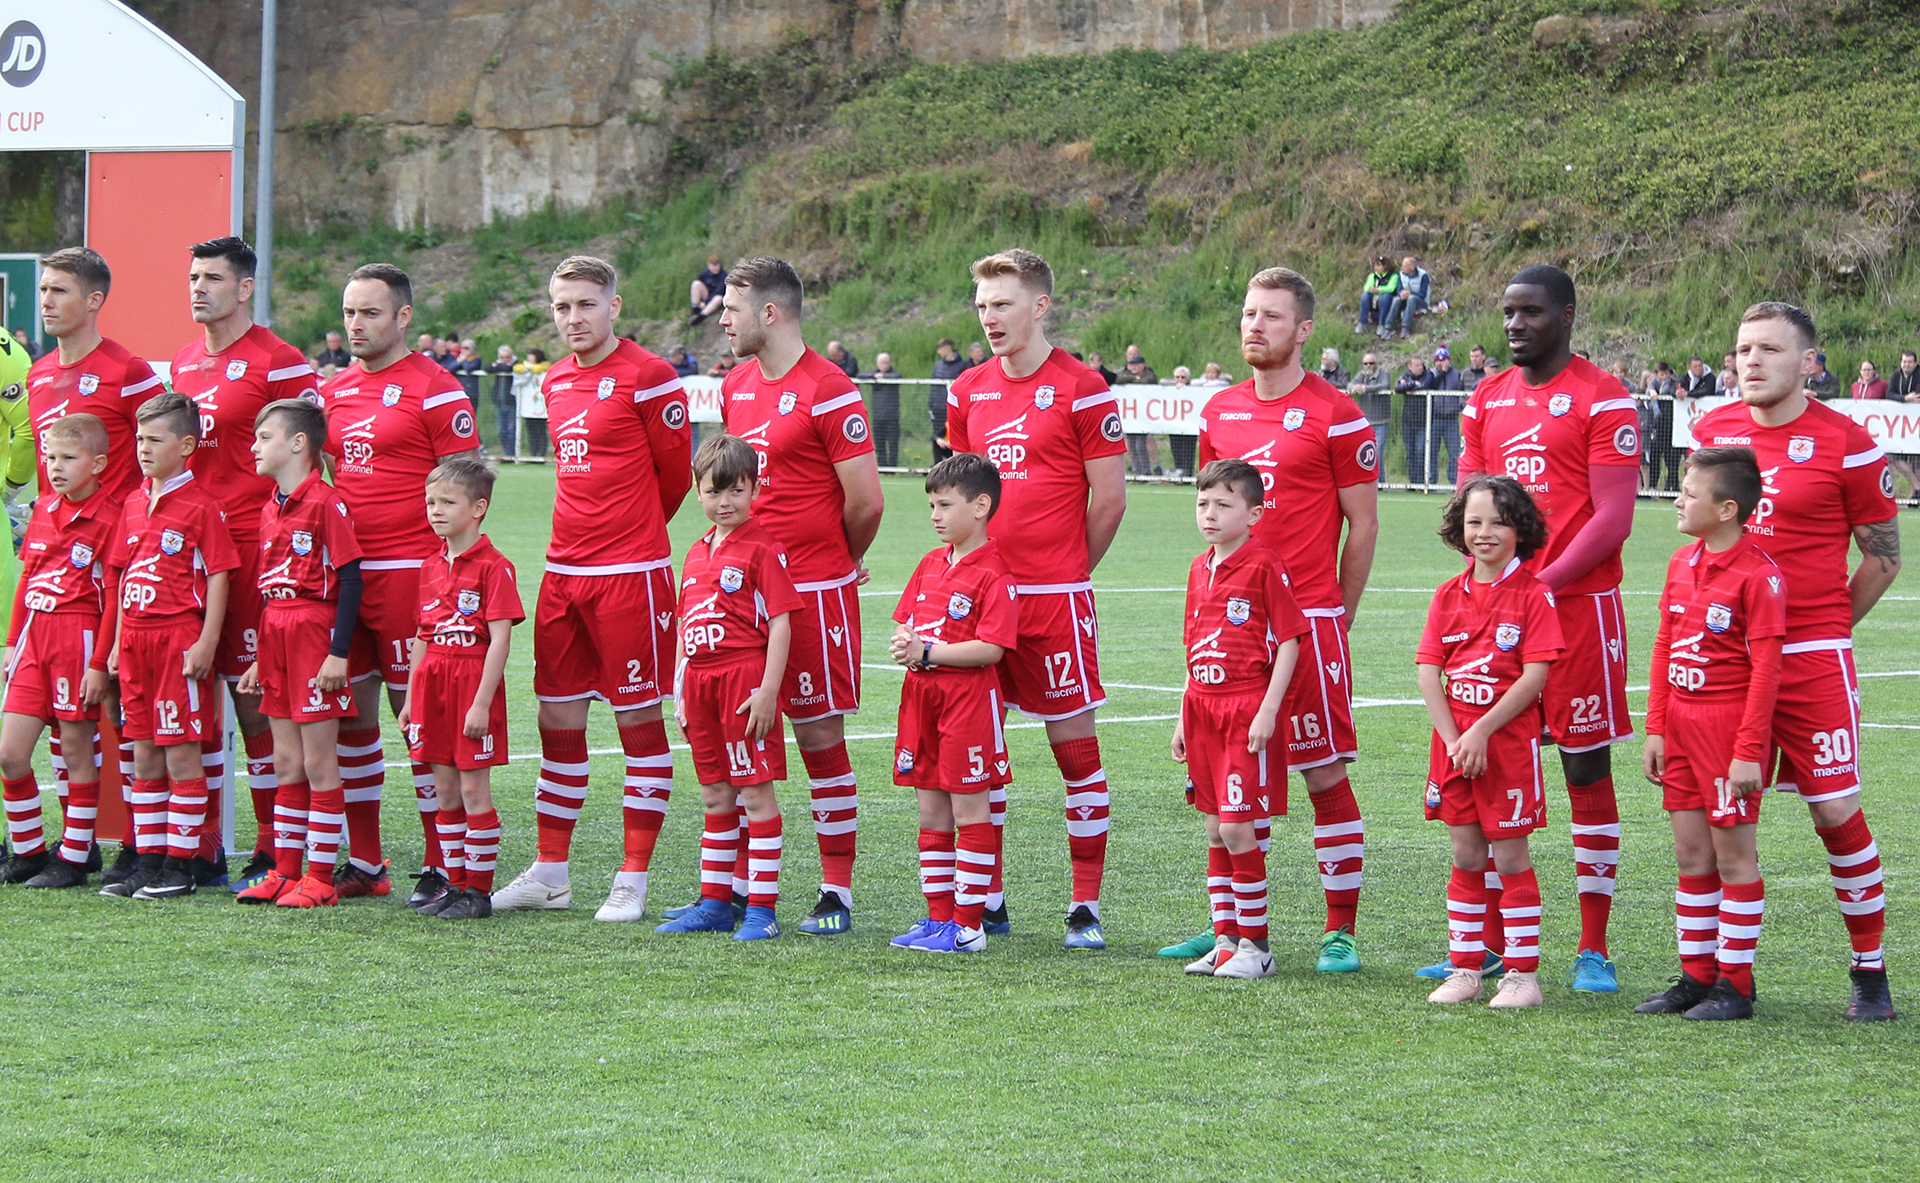 Connah's Quay Nomads players line up ahead of the 2019 JD Welsh Cup Final | © NCM Media